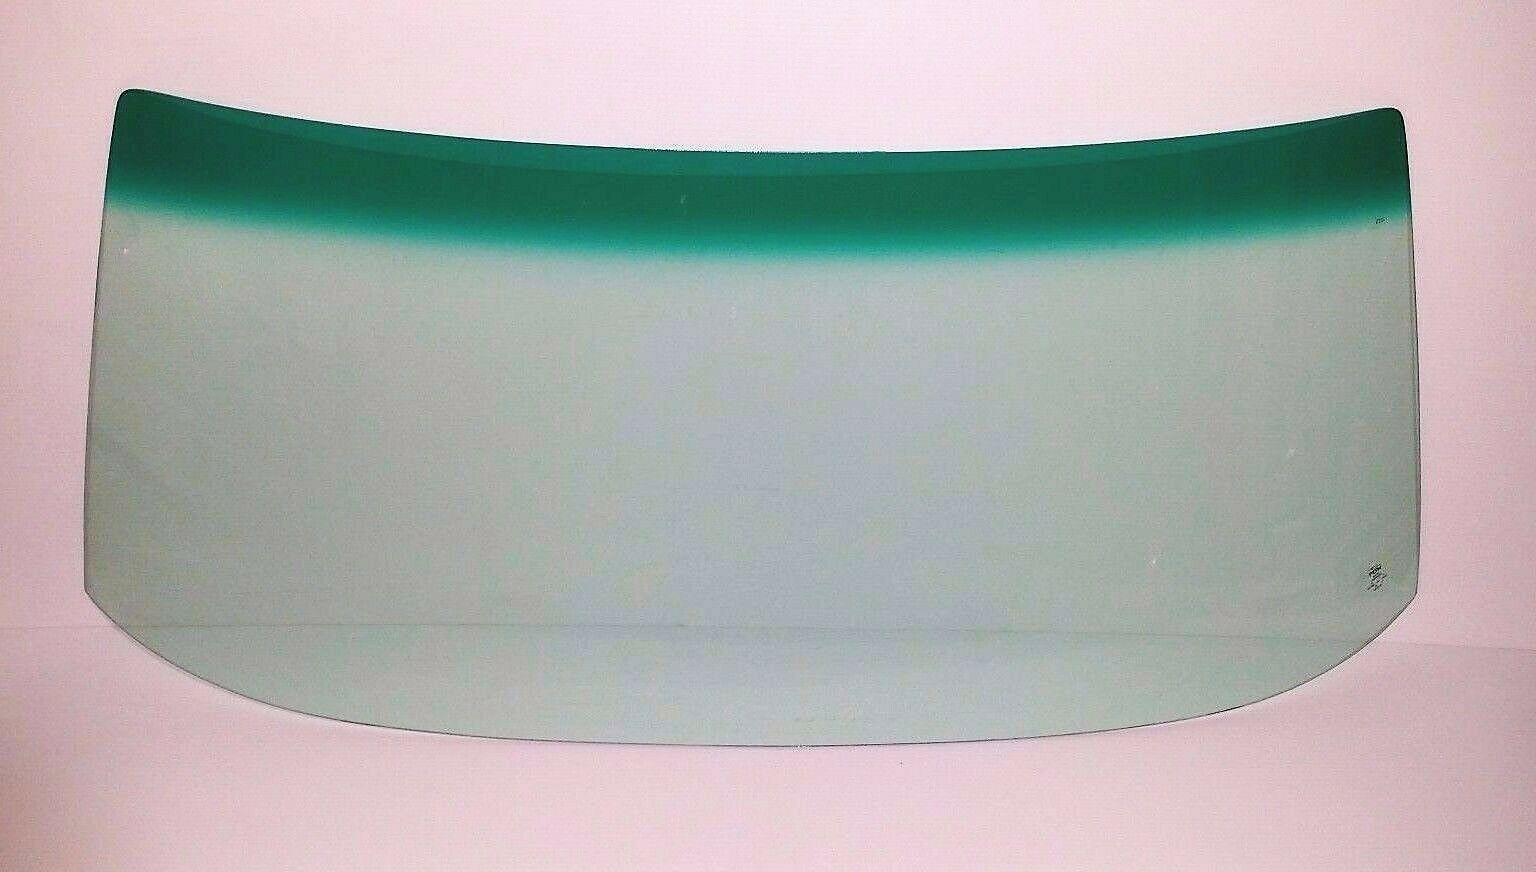 1966-1973 Mercedes Benz 300SEL, 300SEB, 250S, 280SEL Sedan Windshield